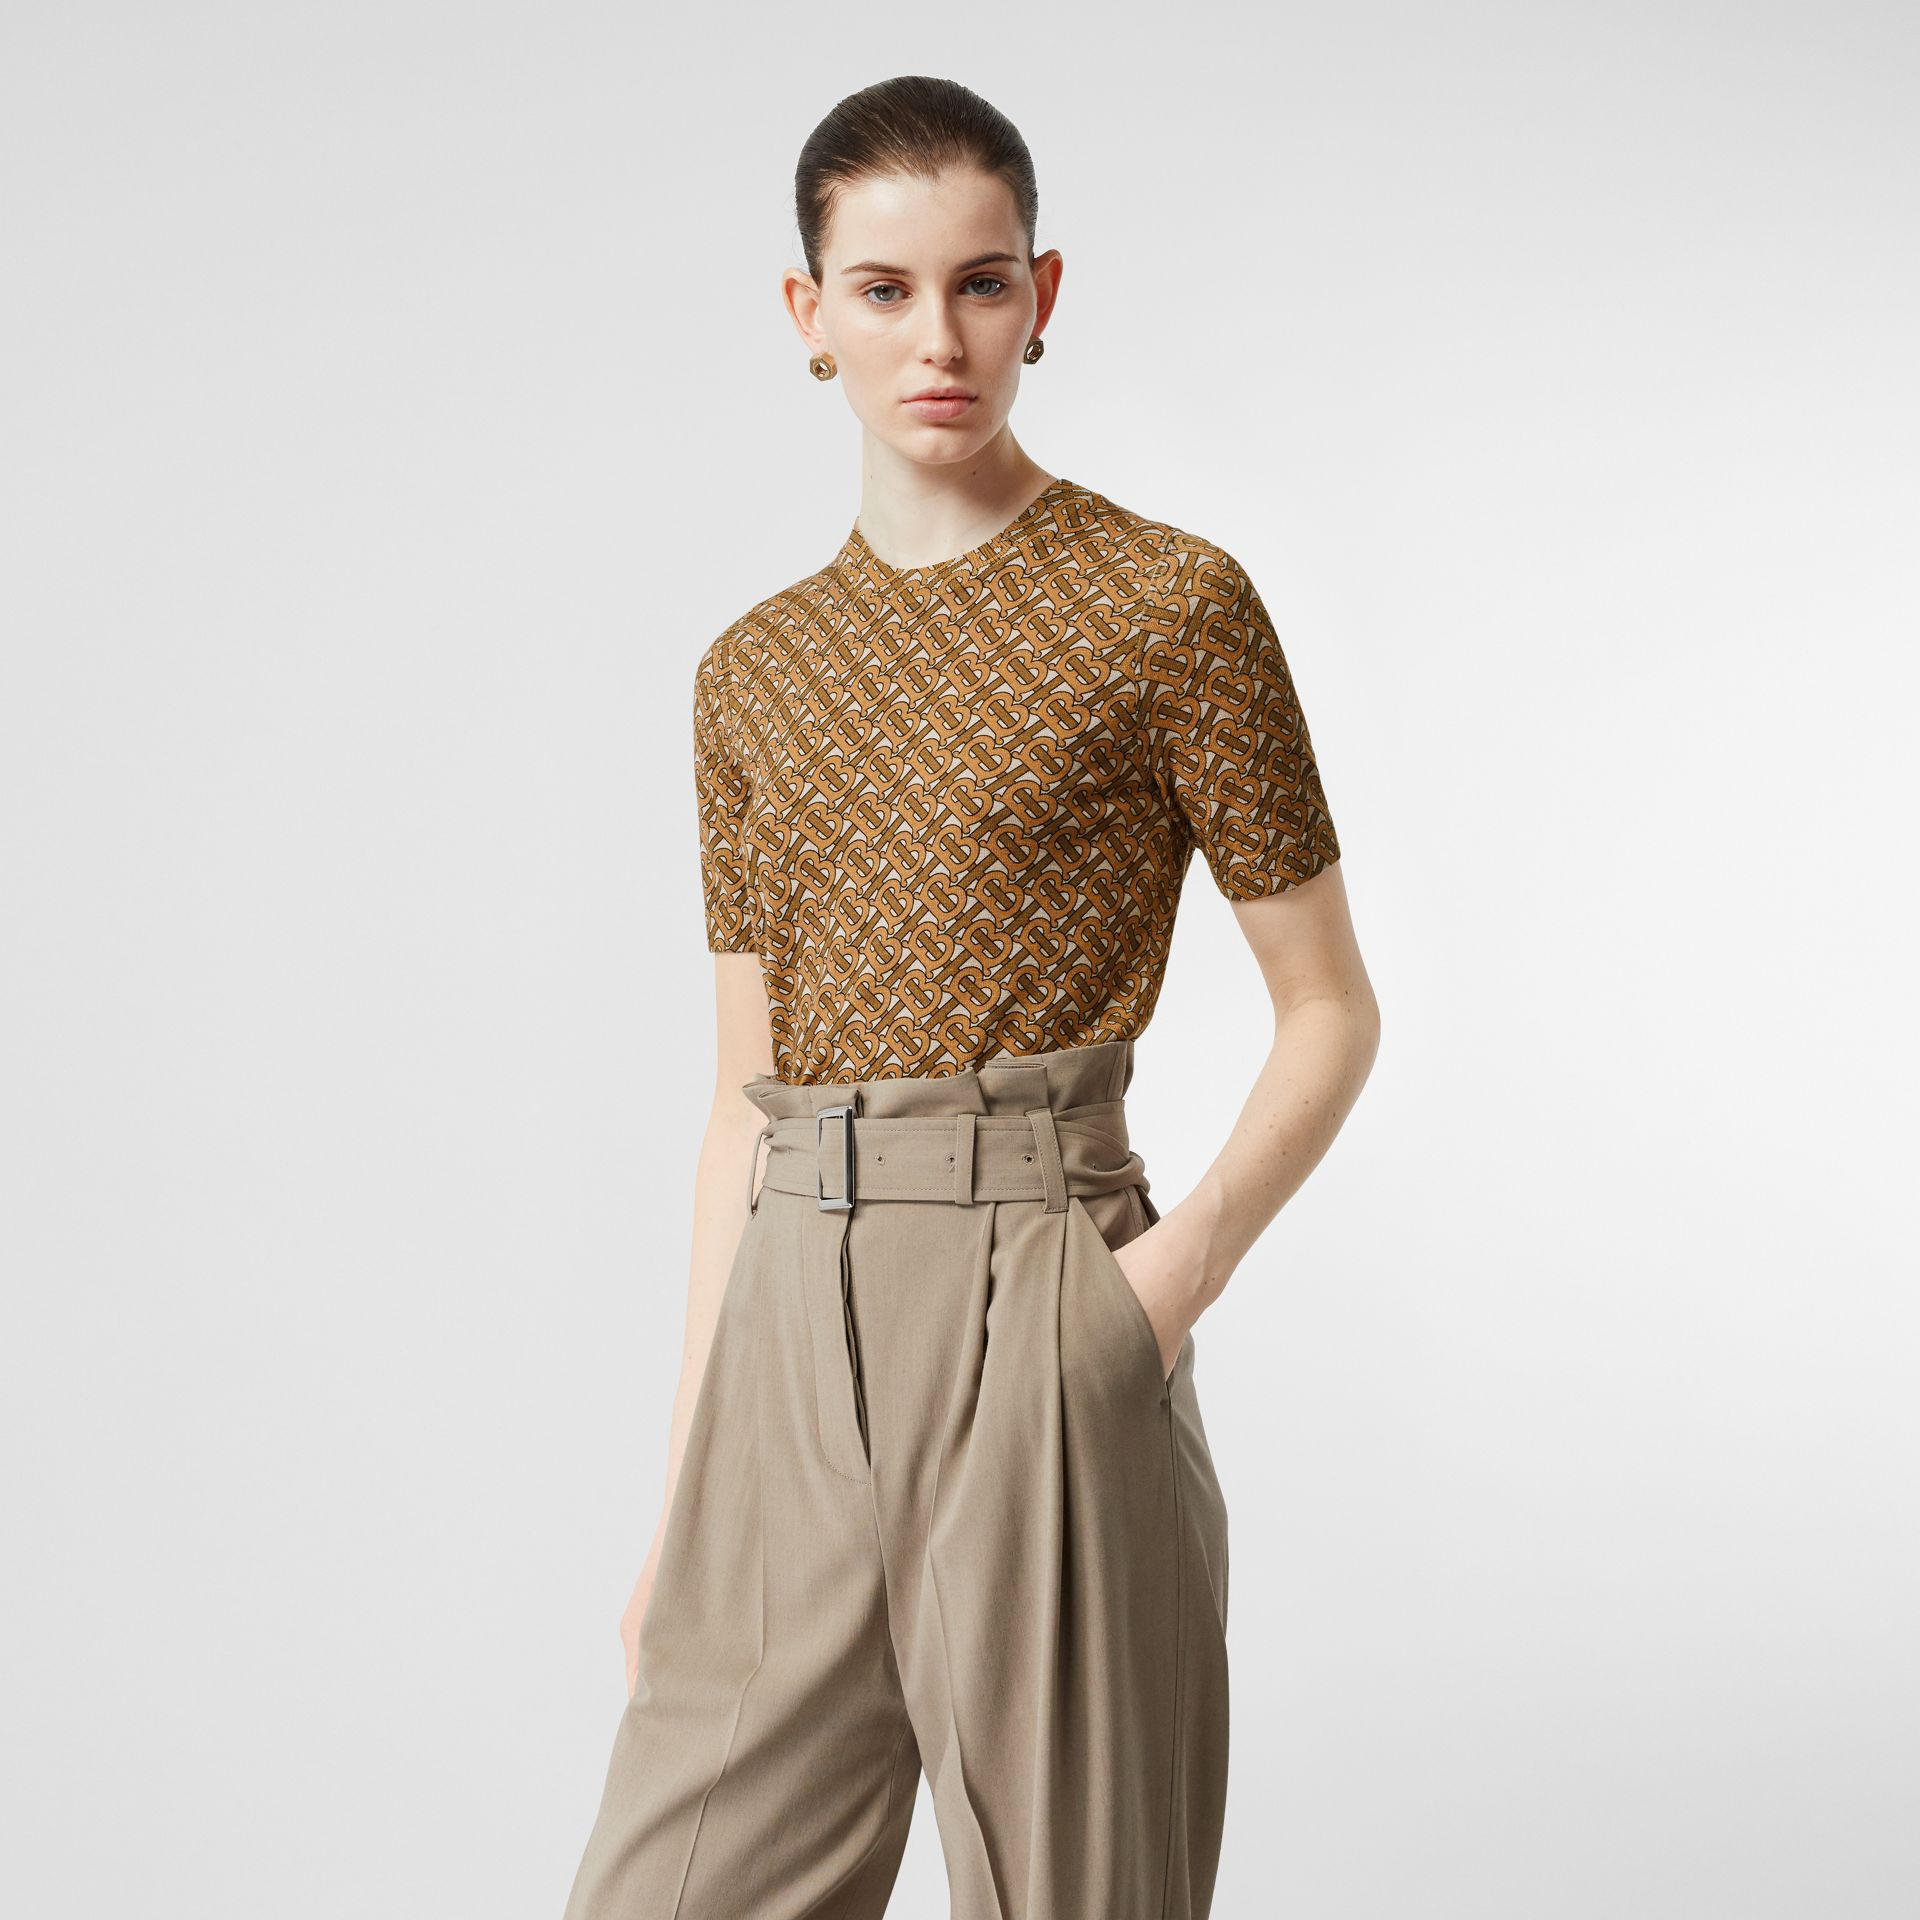 Monogram Print Merino Wool Top in Beige - Women | Burberry - gallery image 4